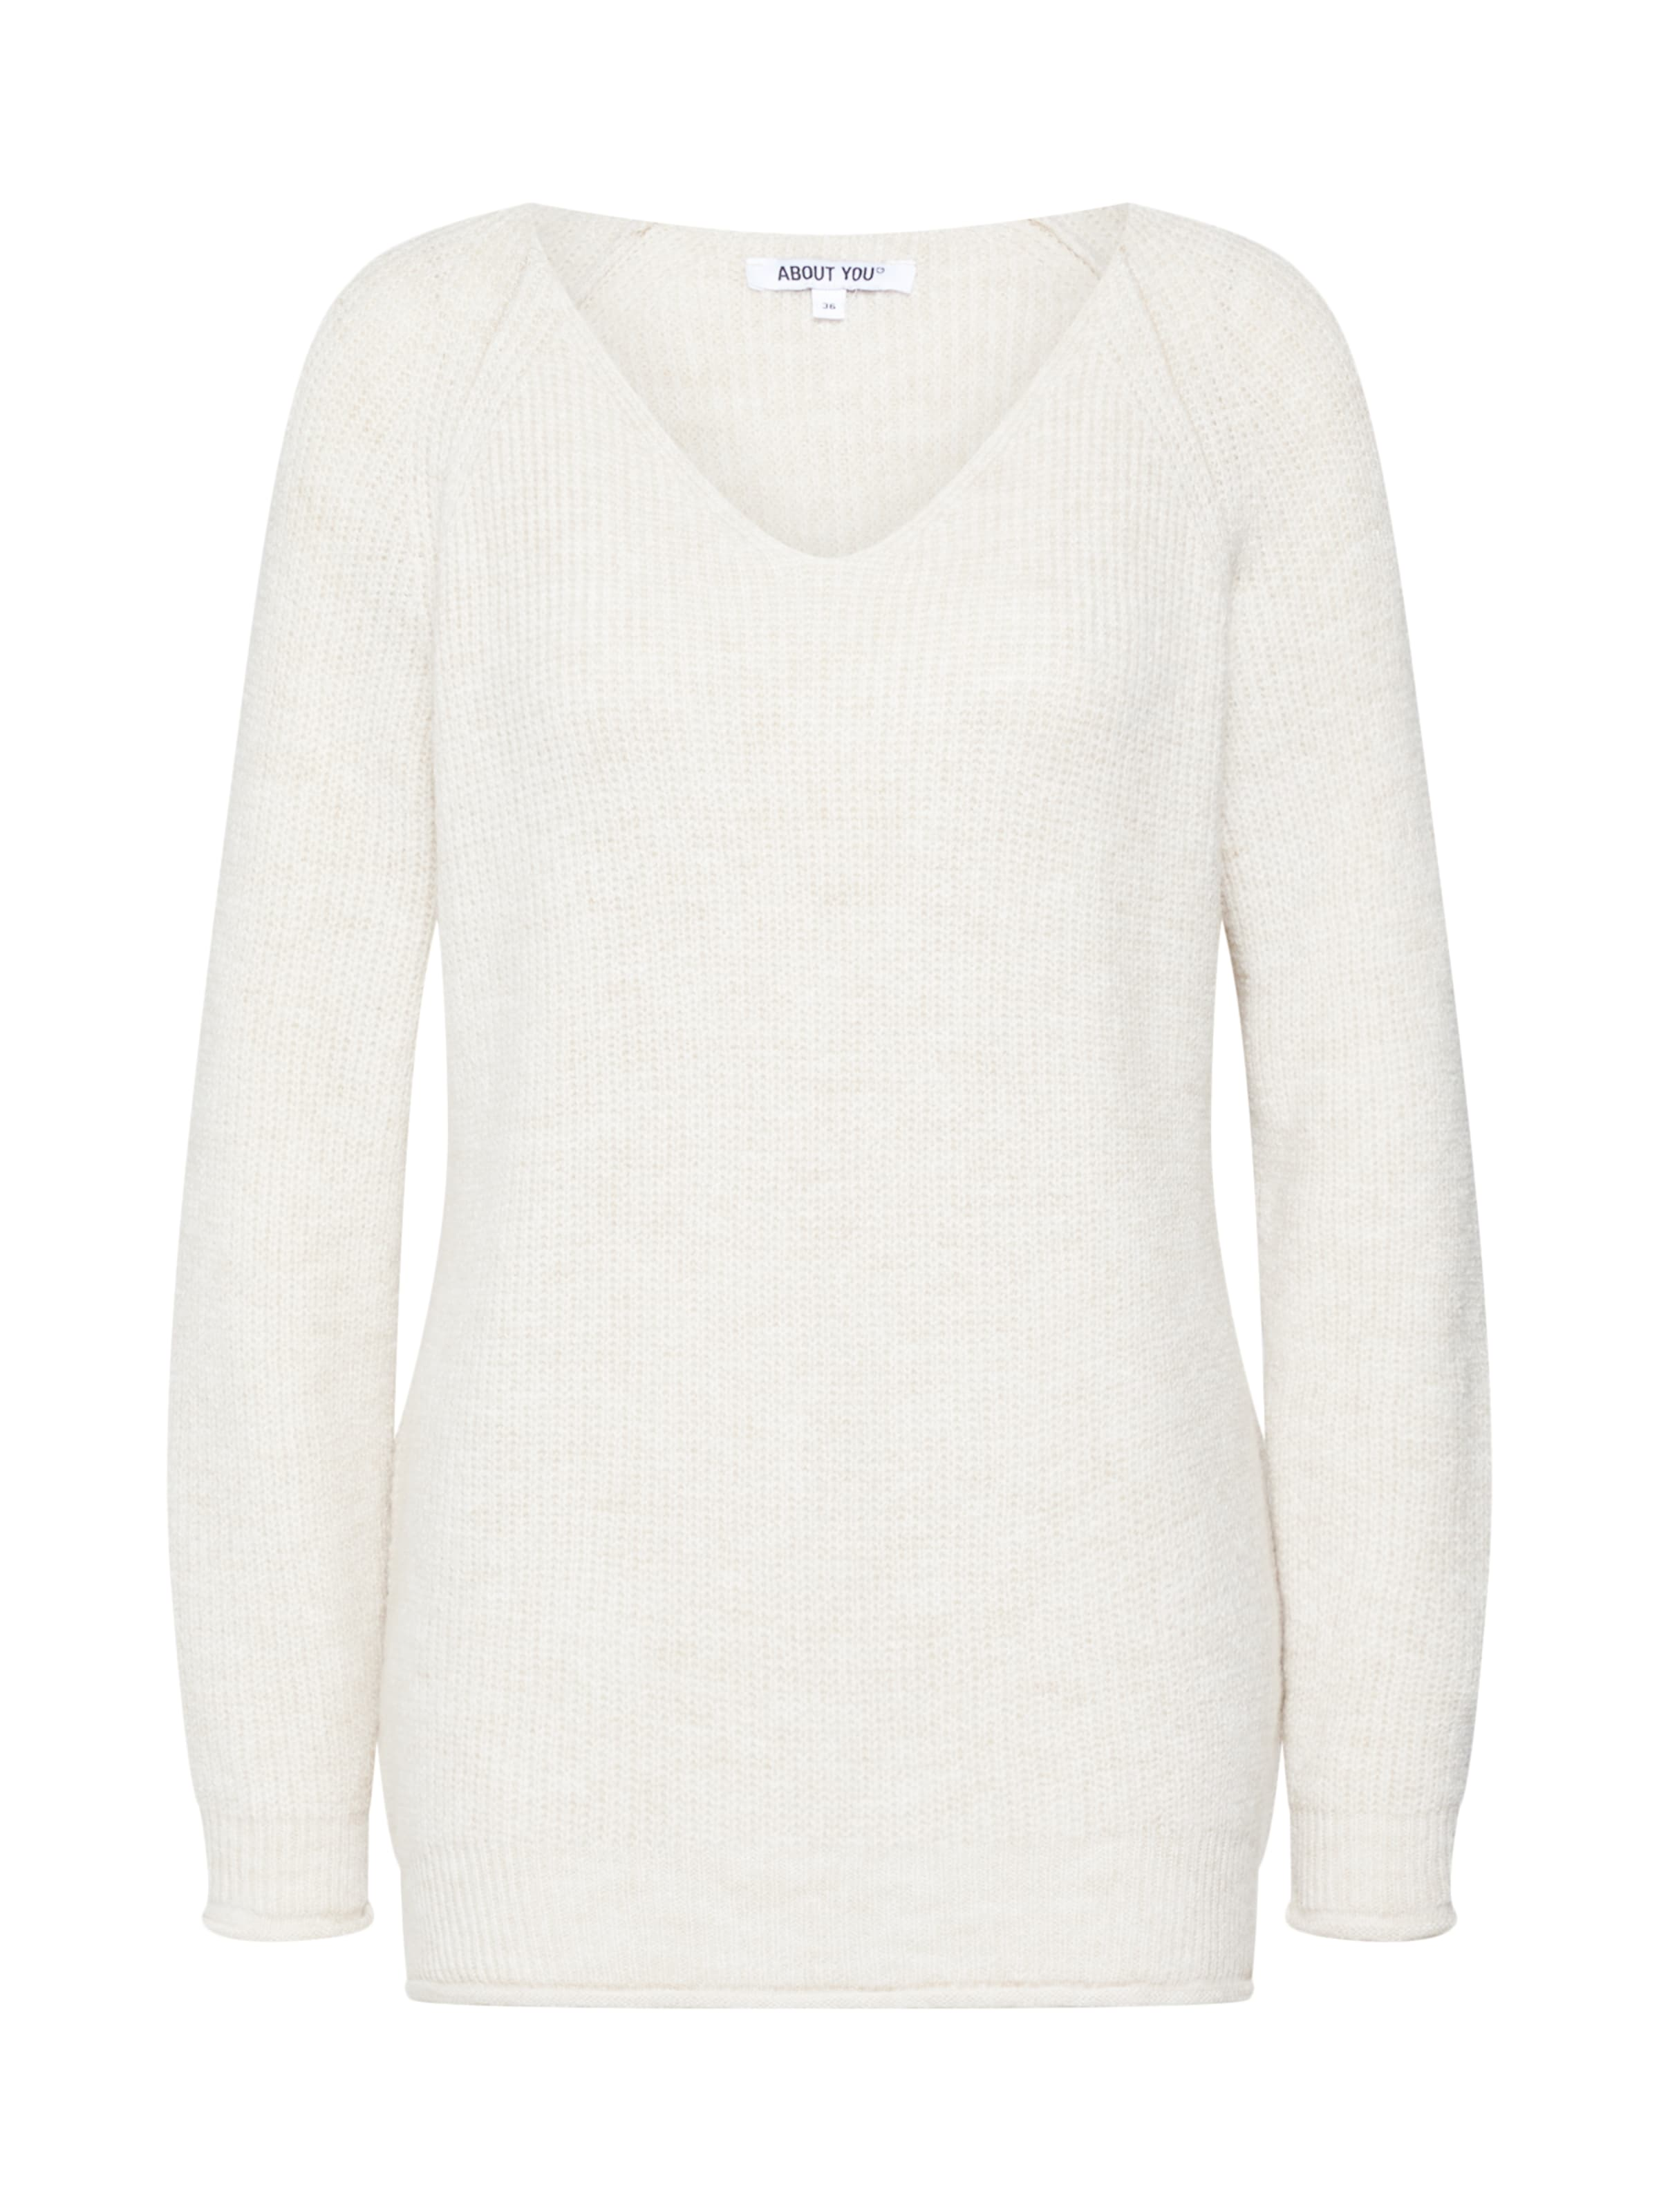 In Creme 'laren' You Pullover About tQhdsr